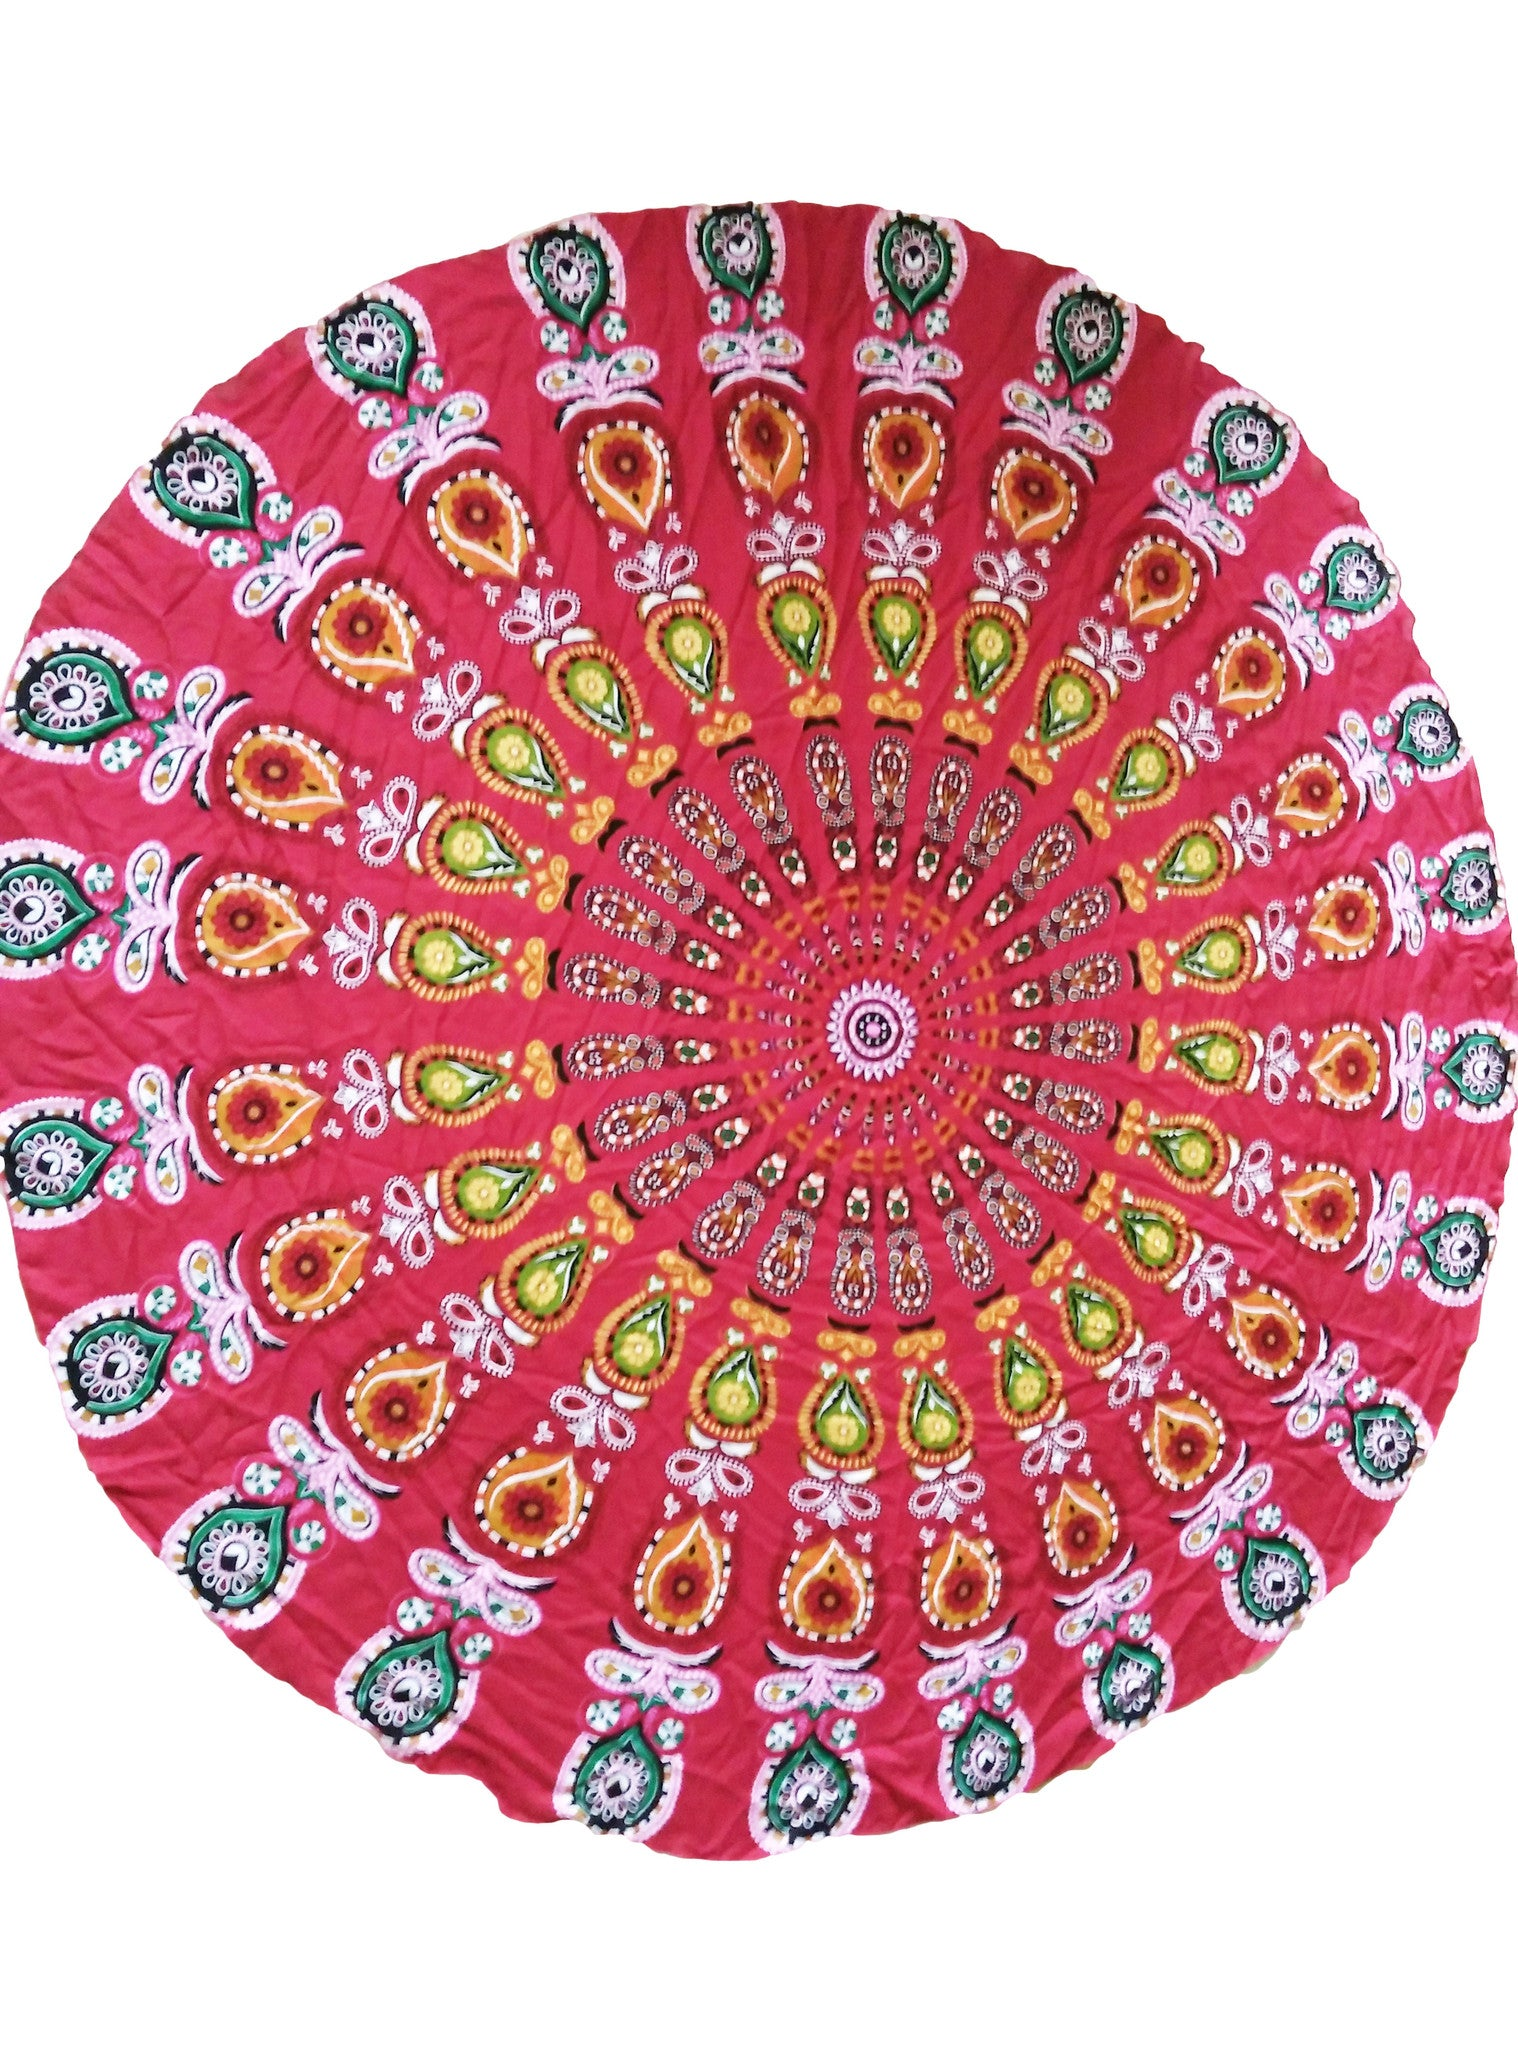 Gorgeous Peacock Print Red Boho Beach Blanket